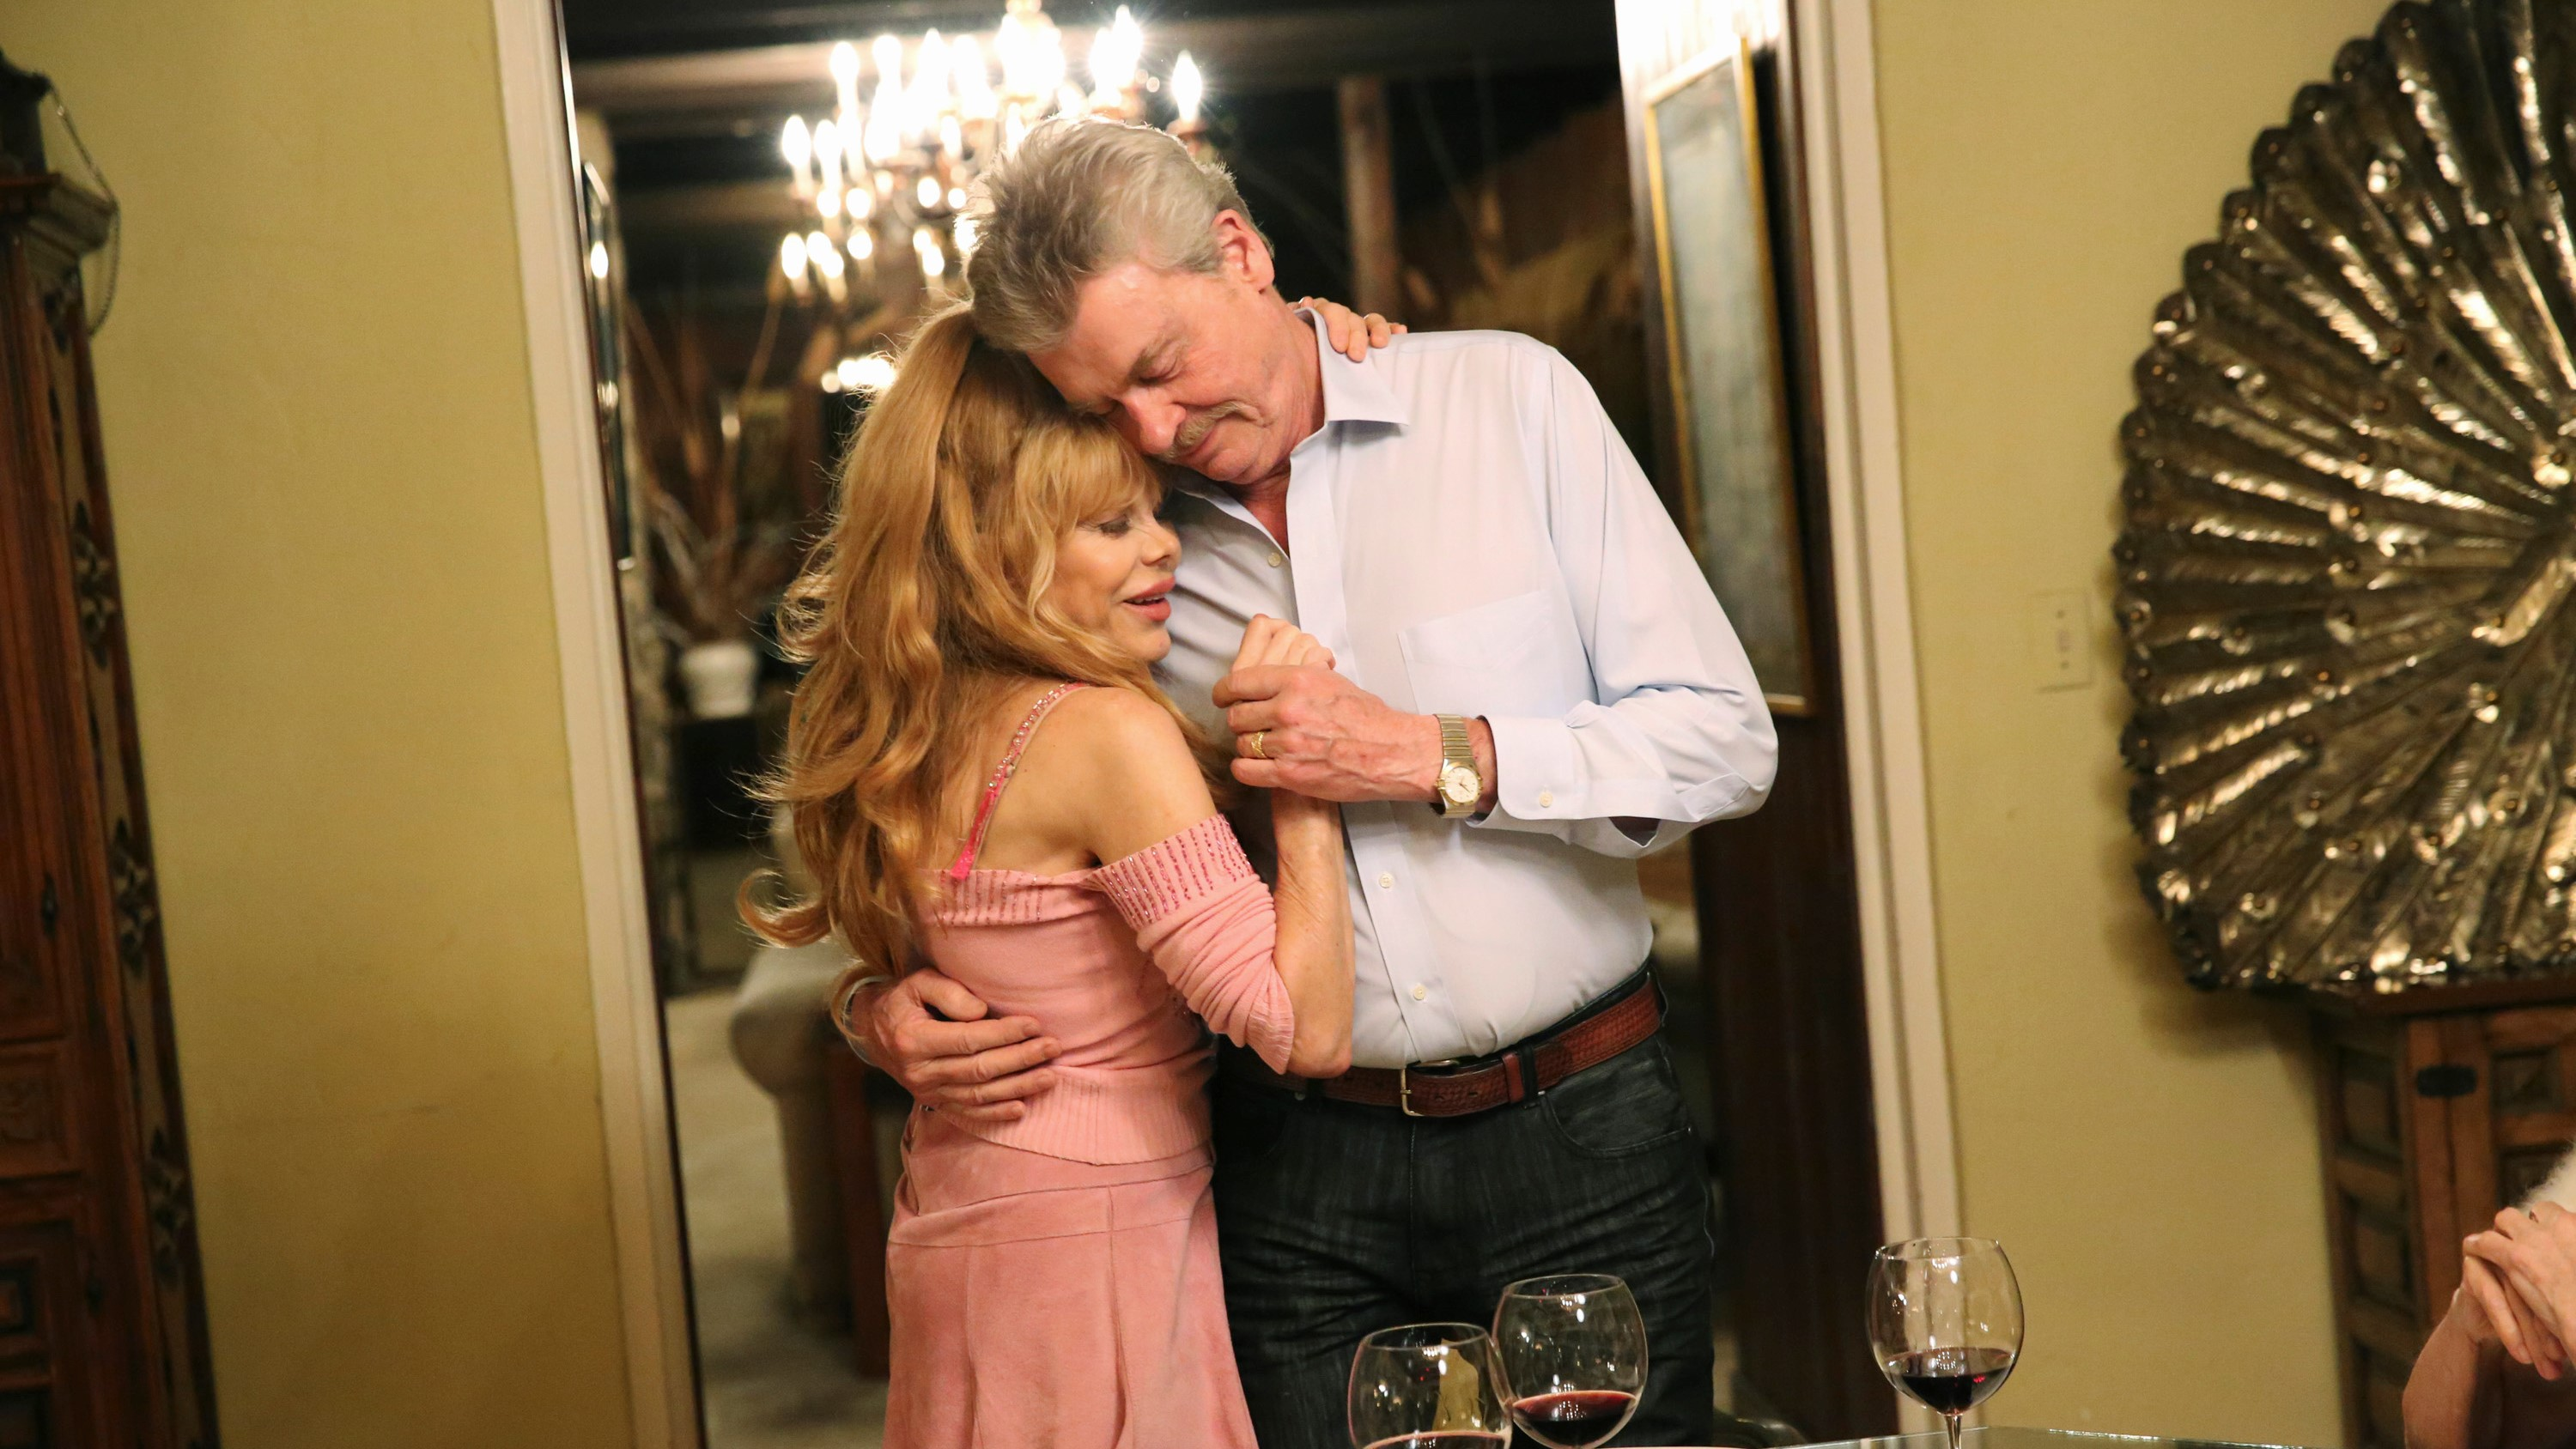 Westlake Legal Group GettyImages-477373726 Charo describes how she 'hugged' her husband after his suicide: 'I was full of blood' New York Post fox-news/entertainment/events/departed fox-news/entertainment/celebrity-news fnc/entertainment fnc Christine Burroni article 905d1f1f-6b19-5c22-b6ec-6b2a4af35ba3